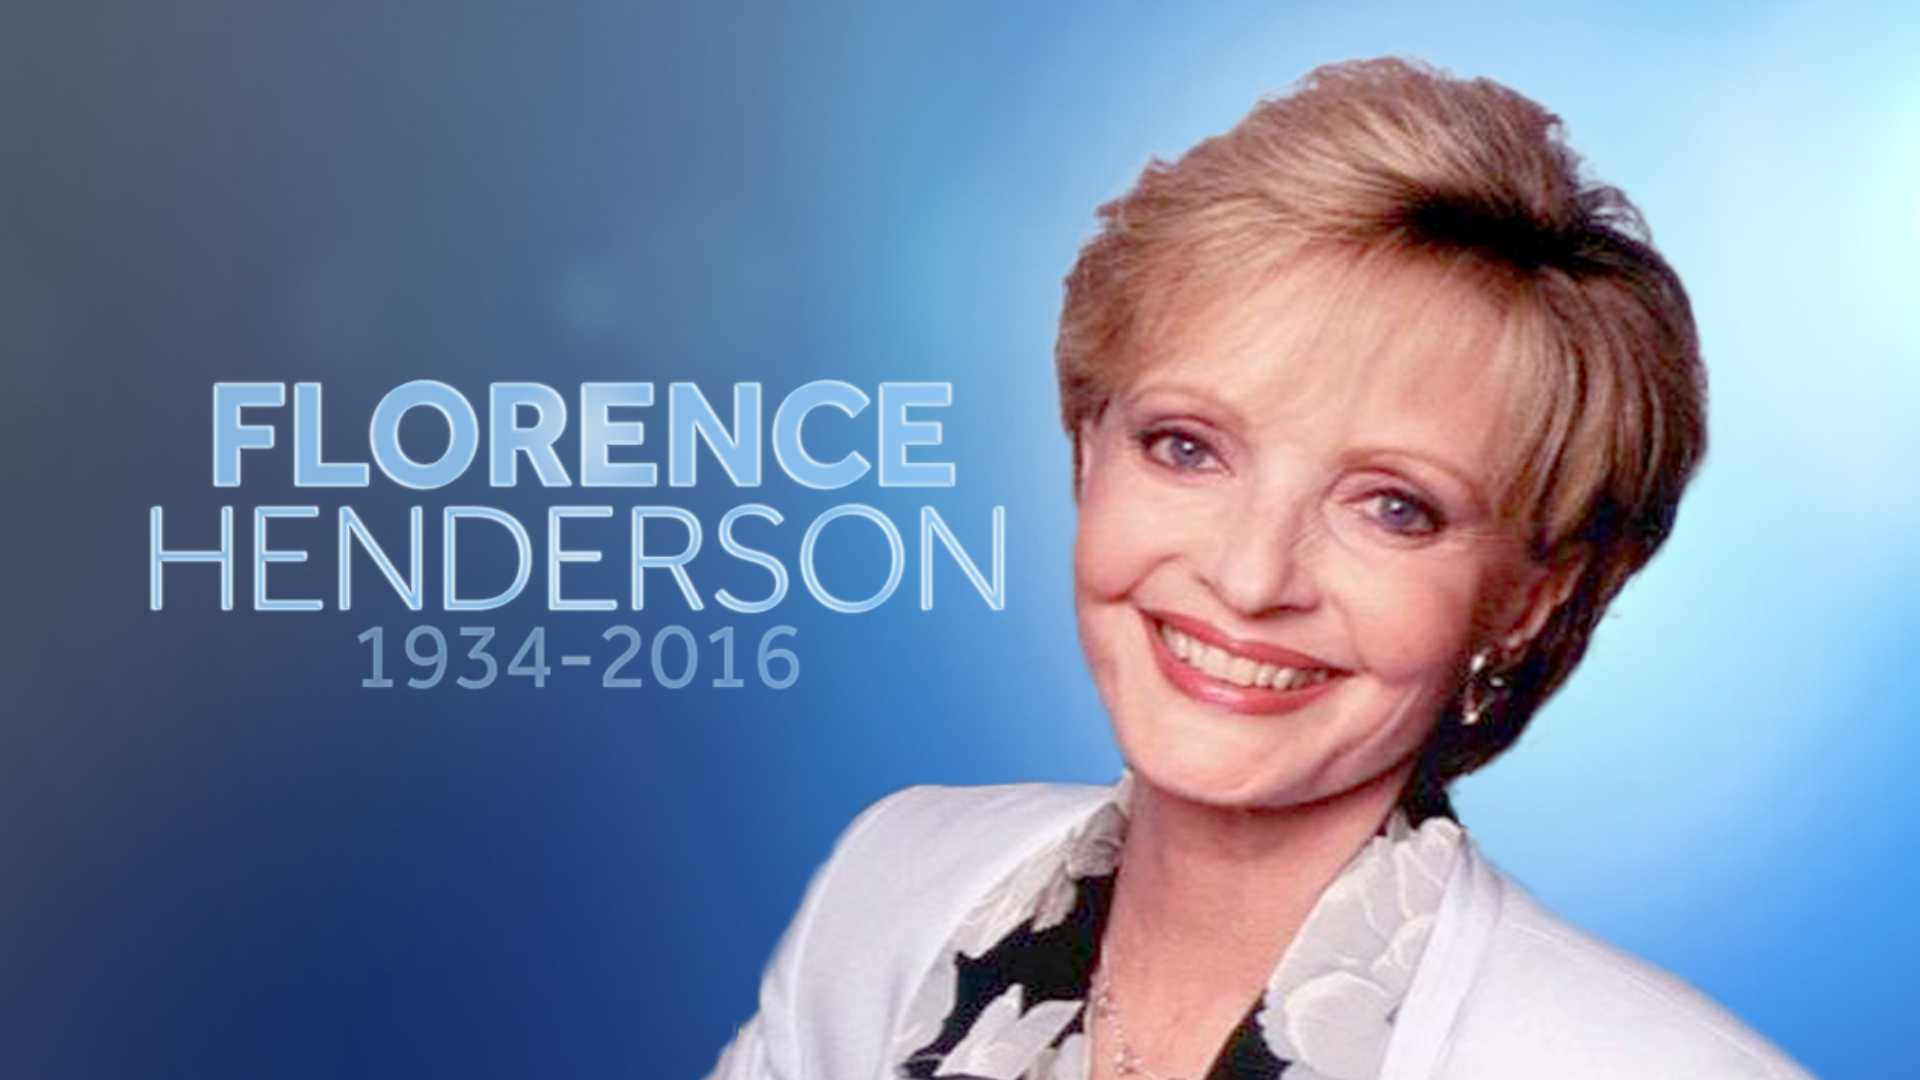 florence henderson died